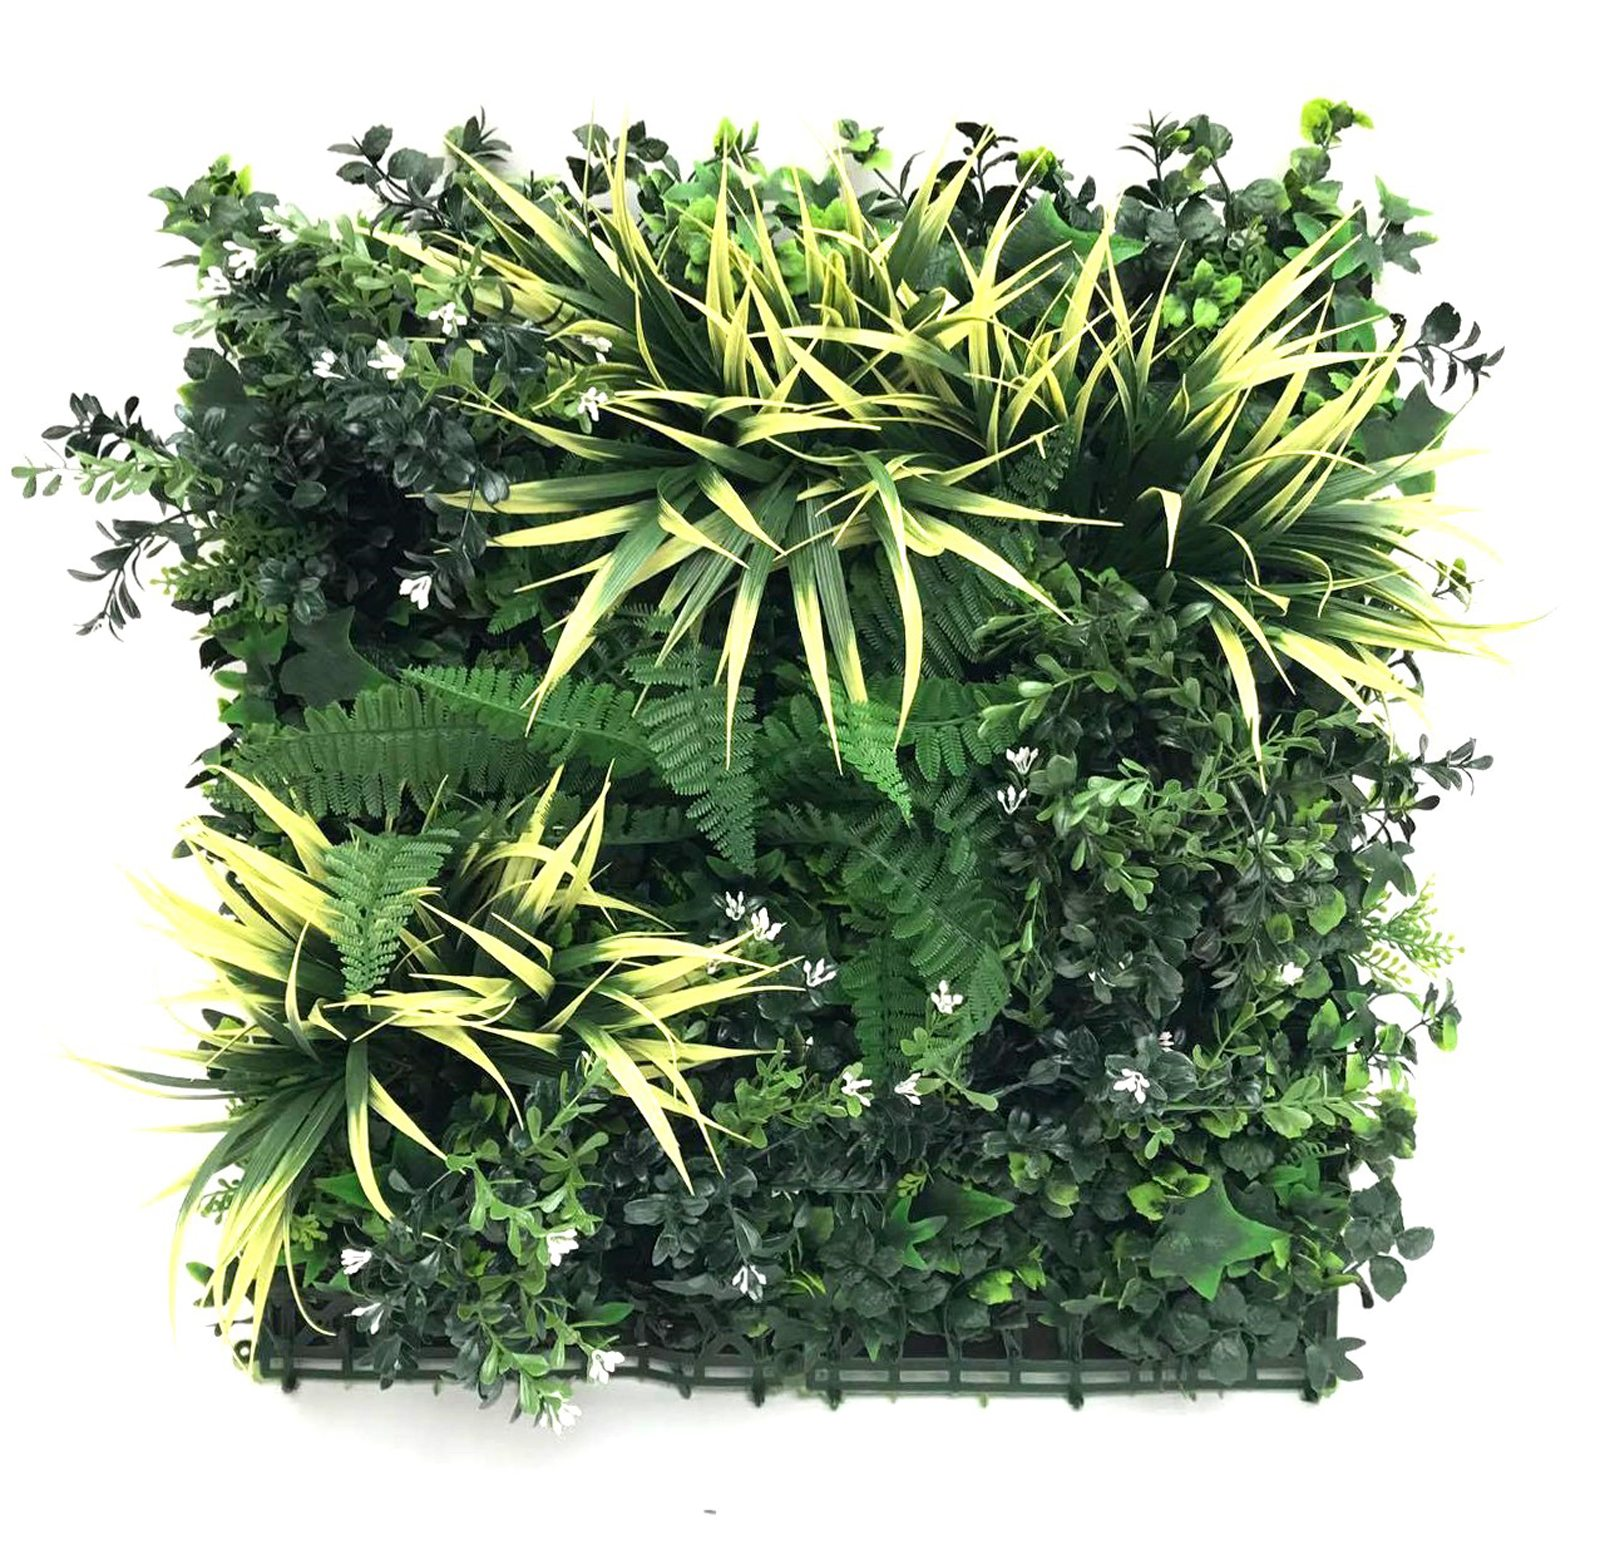 Spring Green Wall by Bonham & Bonham